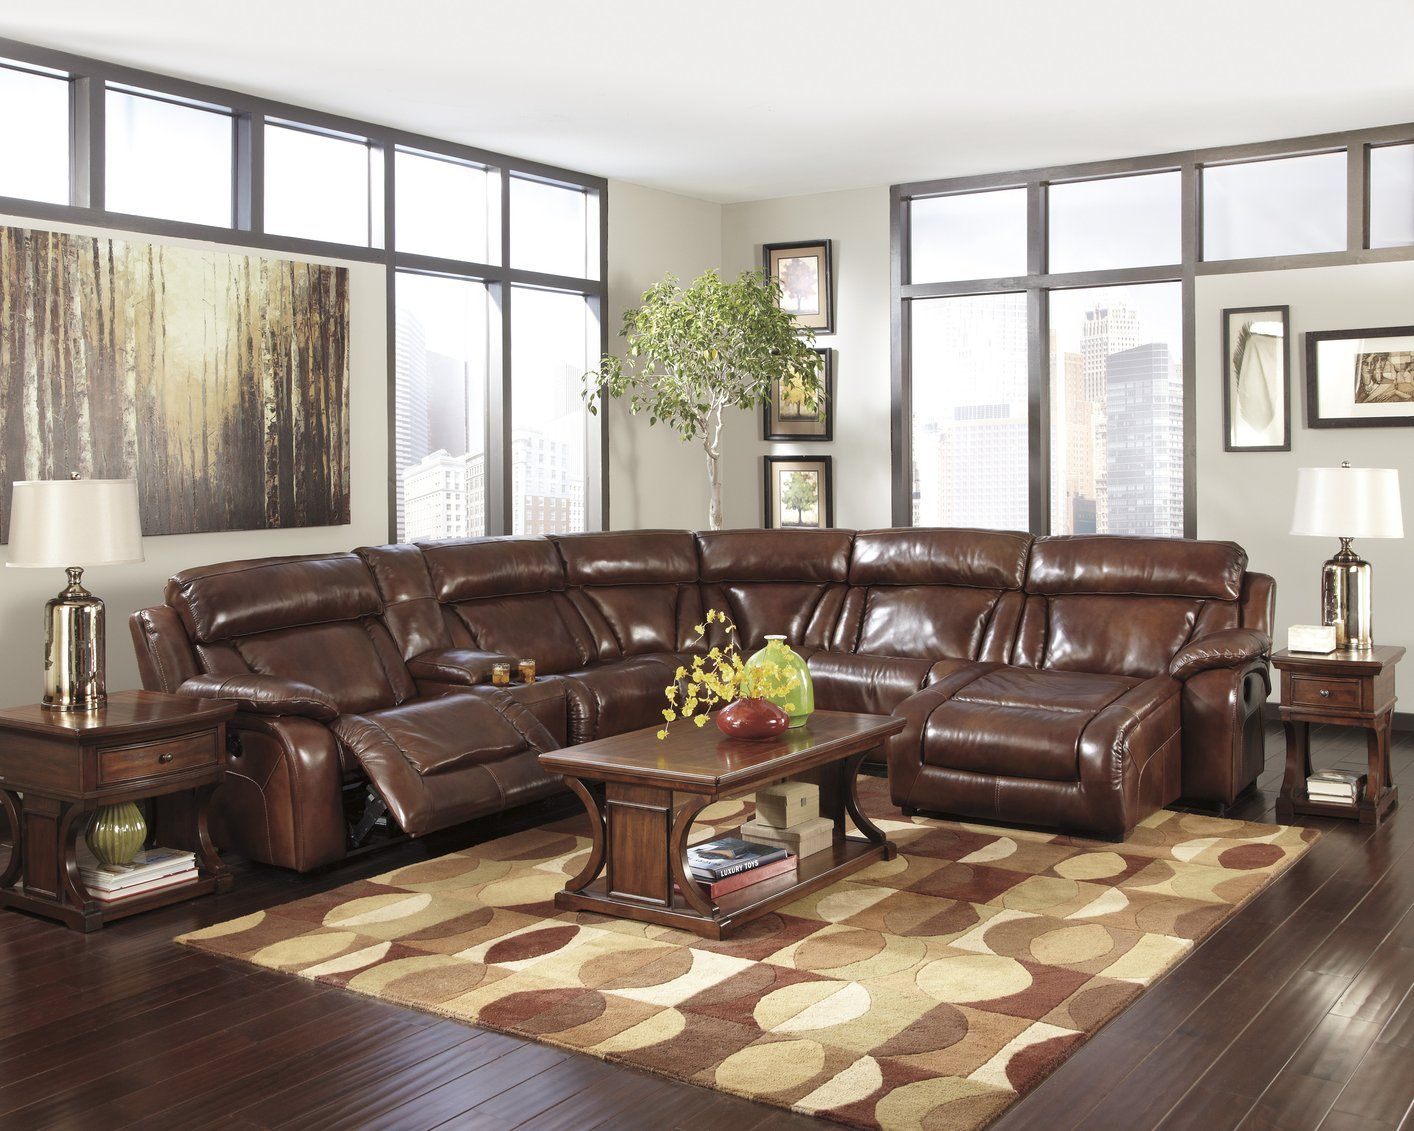 Sculpture Of Sectional Sofa Clearance The Best Way To Get High Quality Sofa In Affordable Price Leather Sectional Sofas Furniture Leather Reclining Sectional